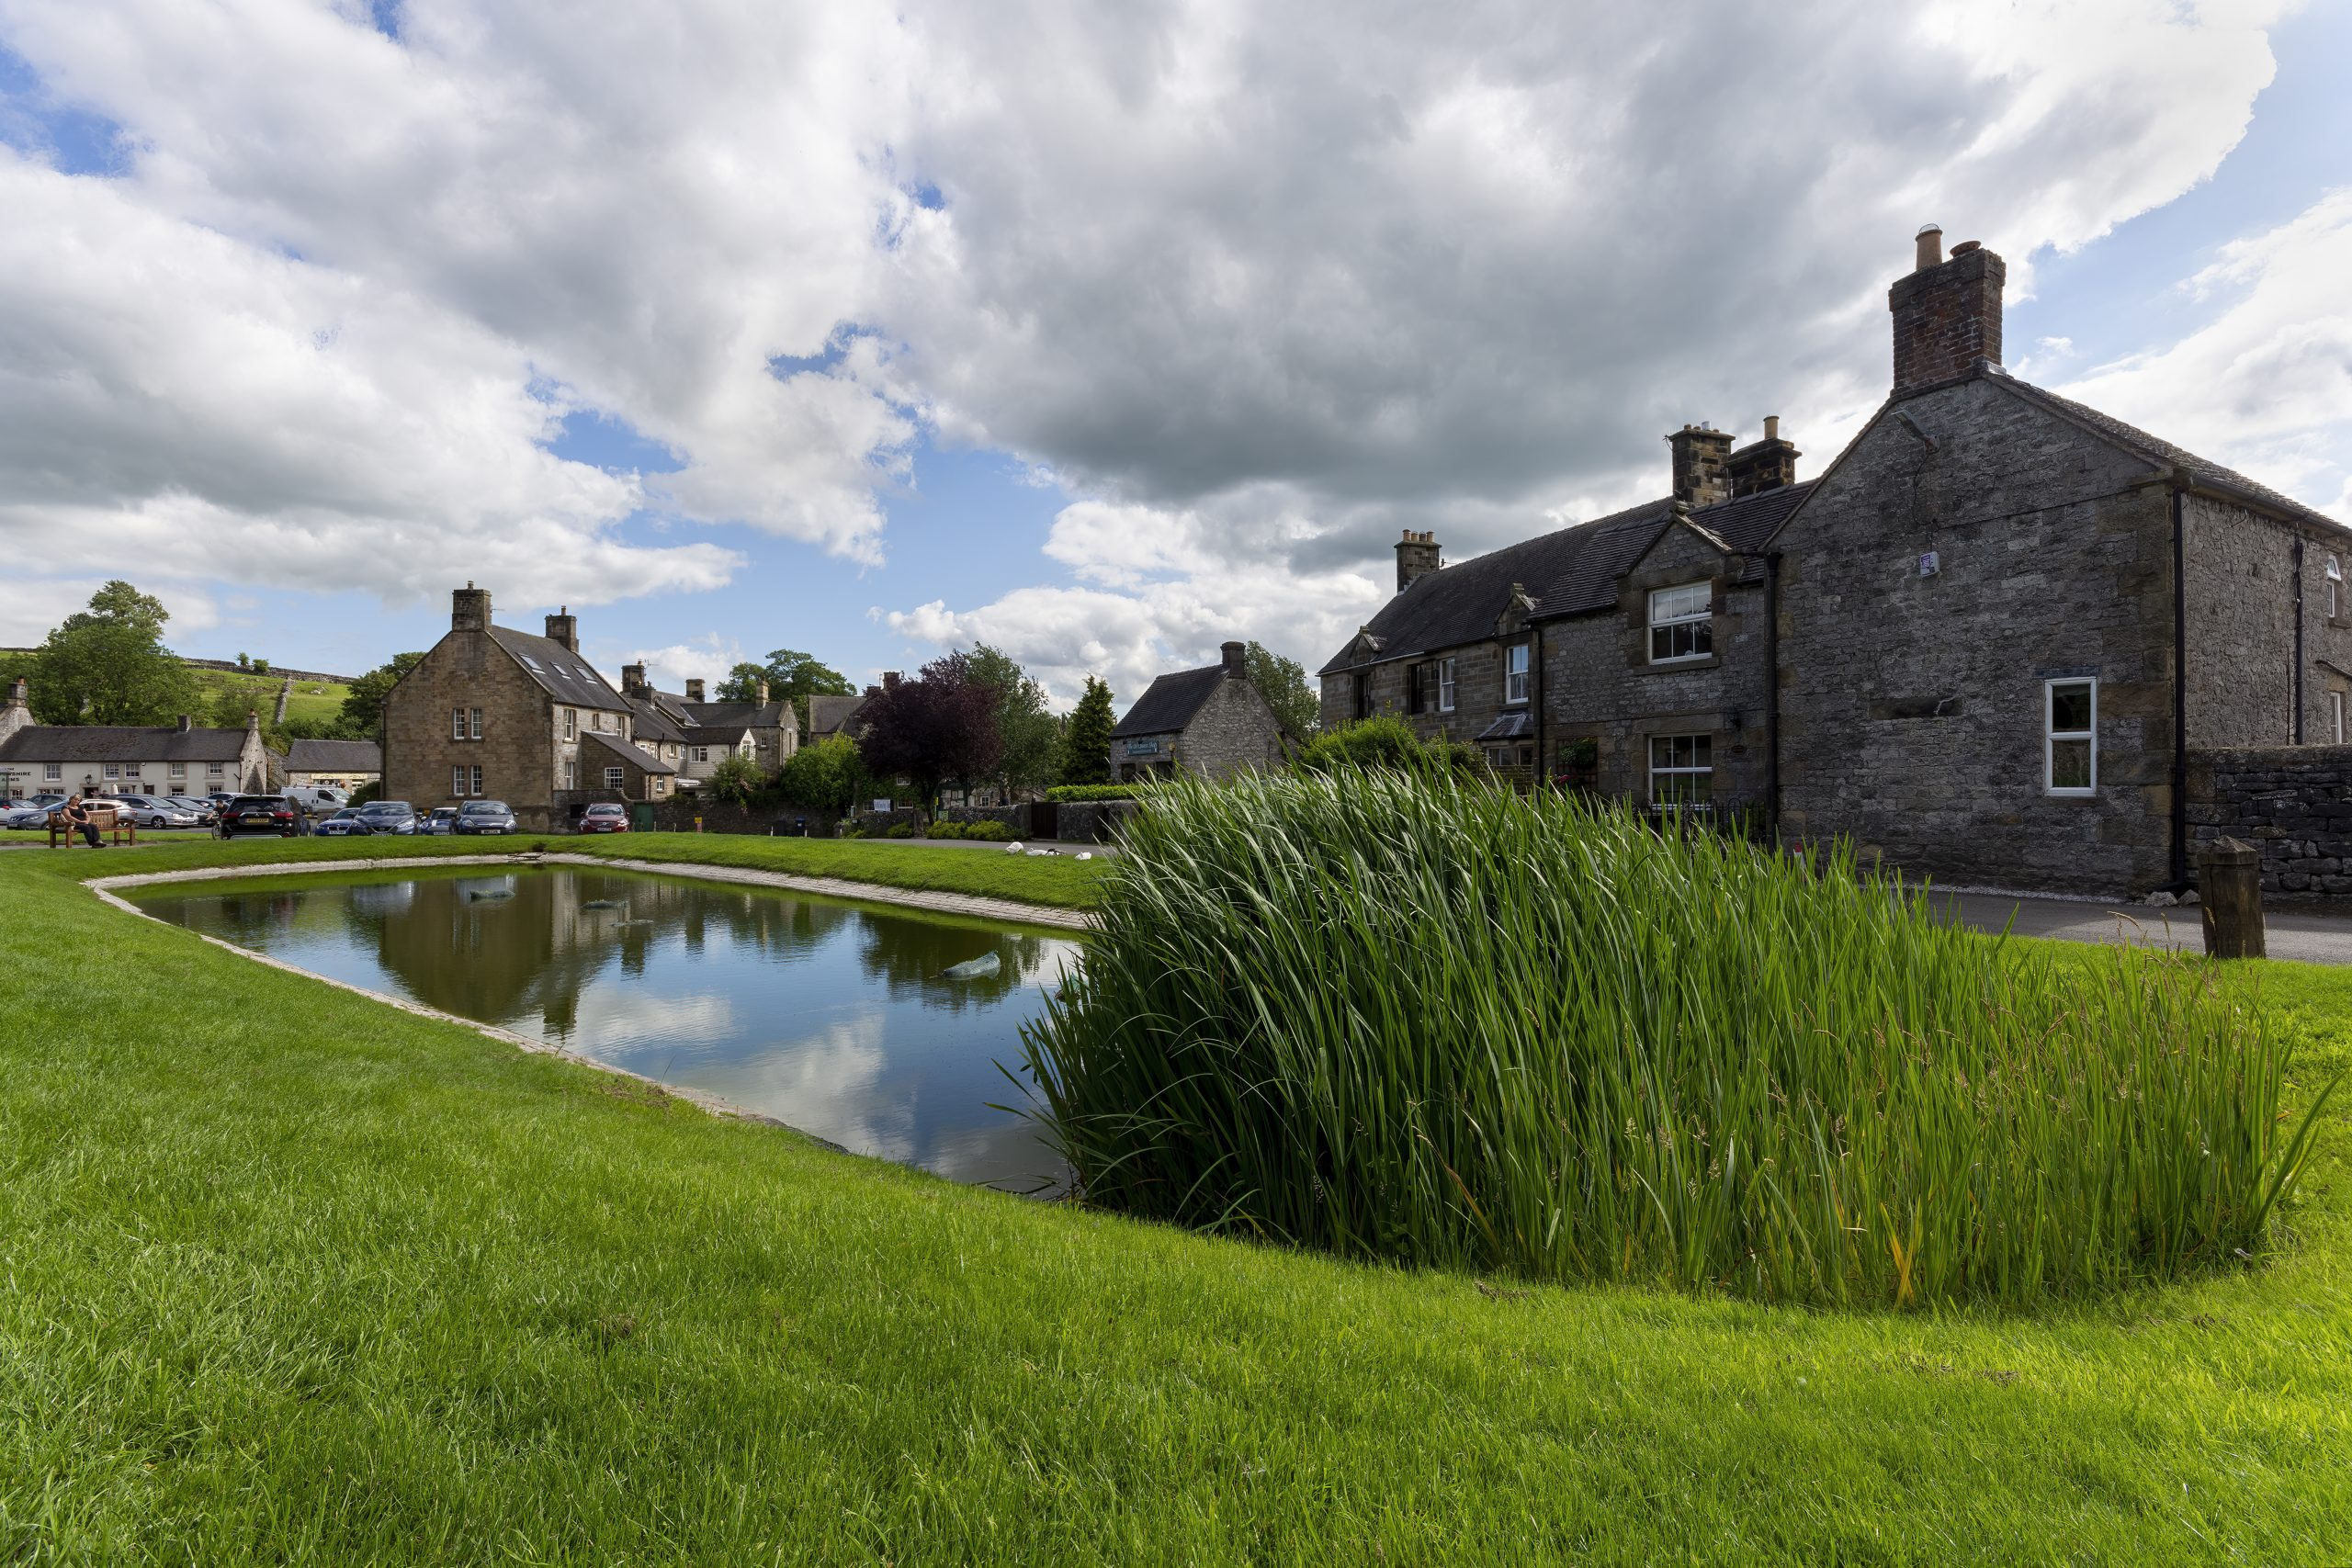 Visit Hartington with Allied Taxis of Buxton